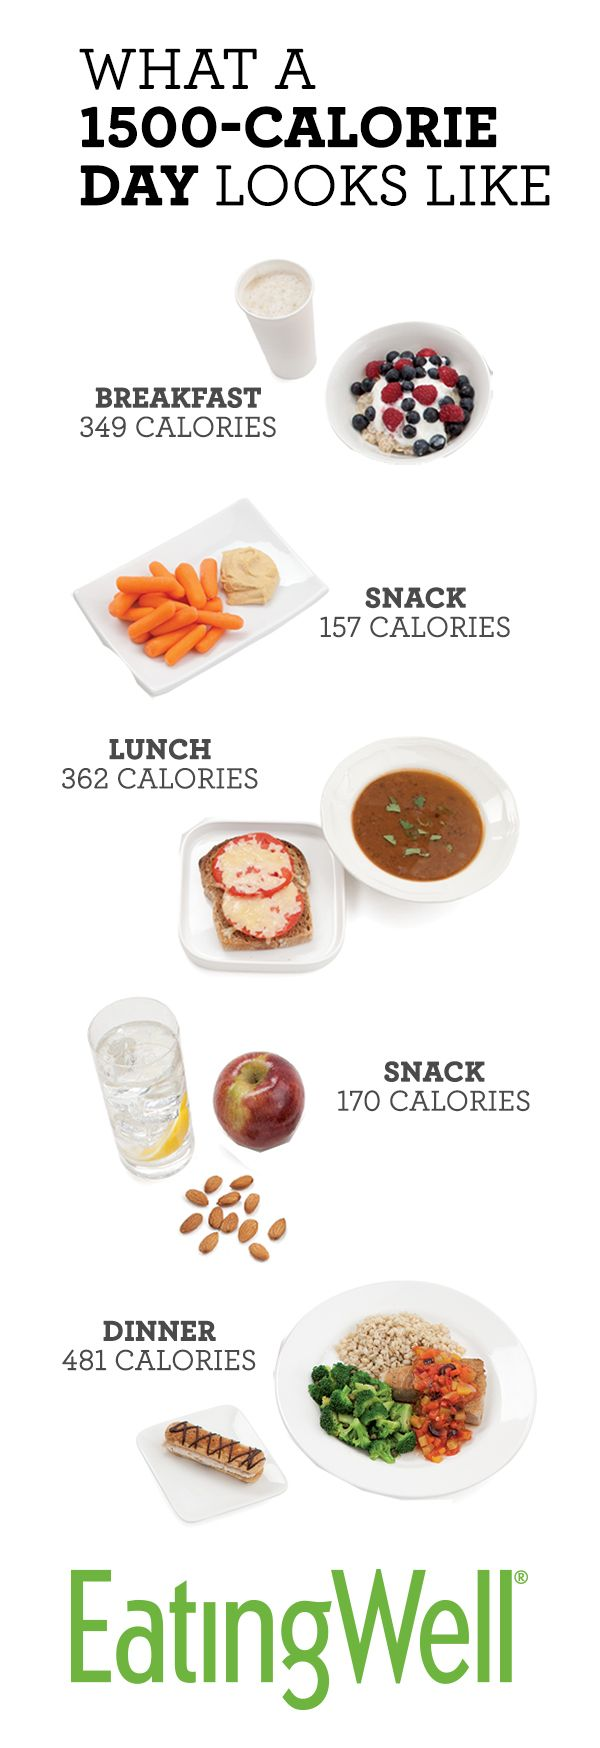 Get FREE meal plans at EatingWell.com. Use our meal plan wizard to create your own.